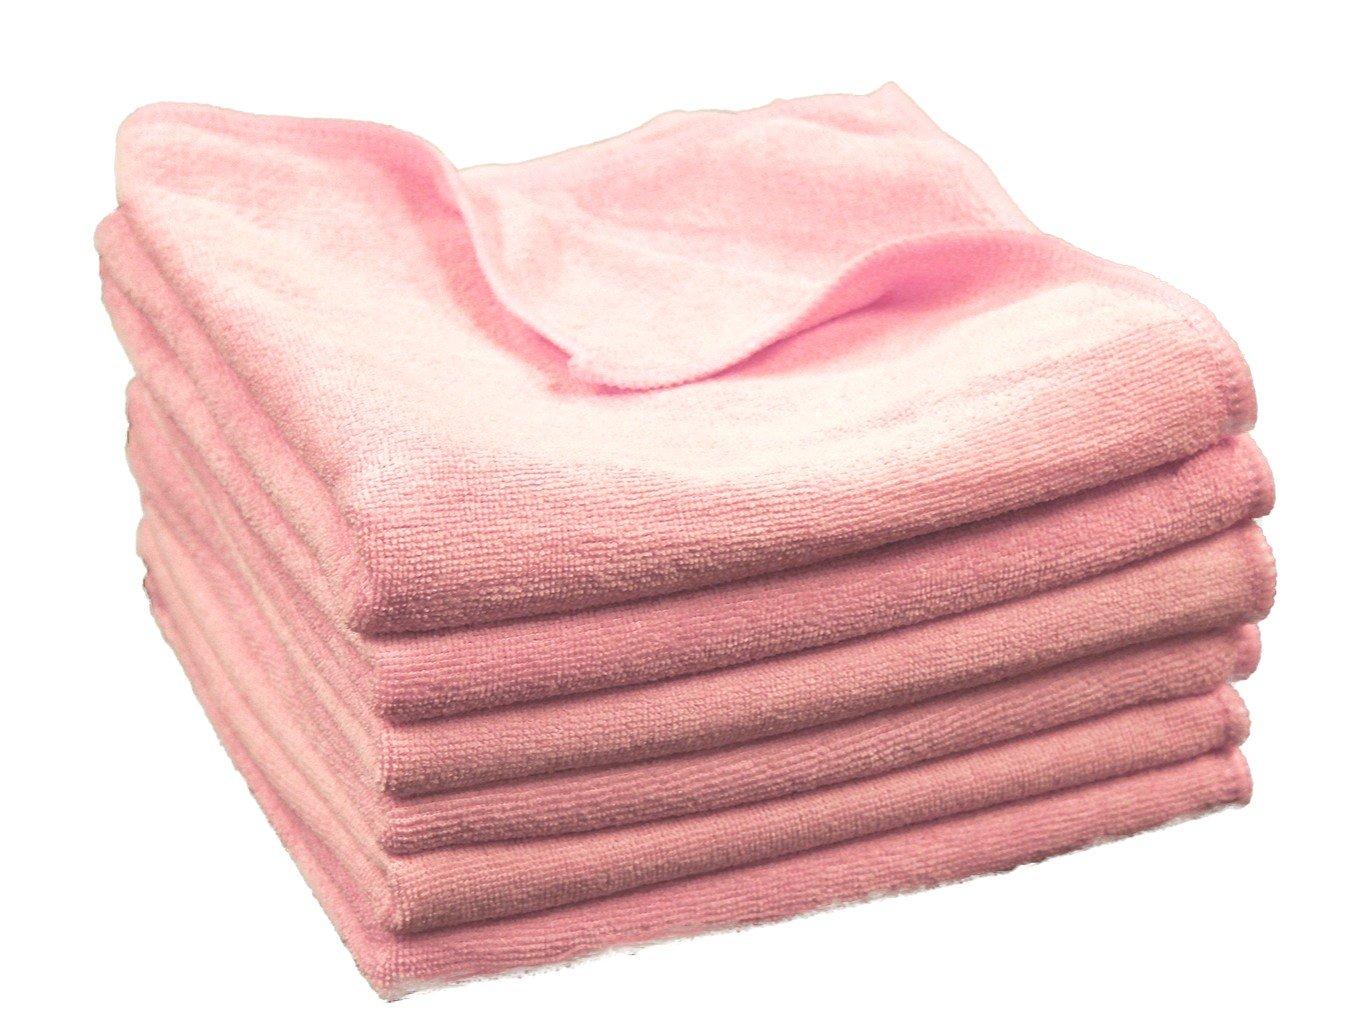 Imperial Front Microfiber Multi-Purpose Cleaning Towels Perfect for Kitchens, Dishes, Car Care, Dusting, Drying Rags, Large 16'' x 16'', Bundle Set of 48 - Baby Pink